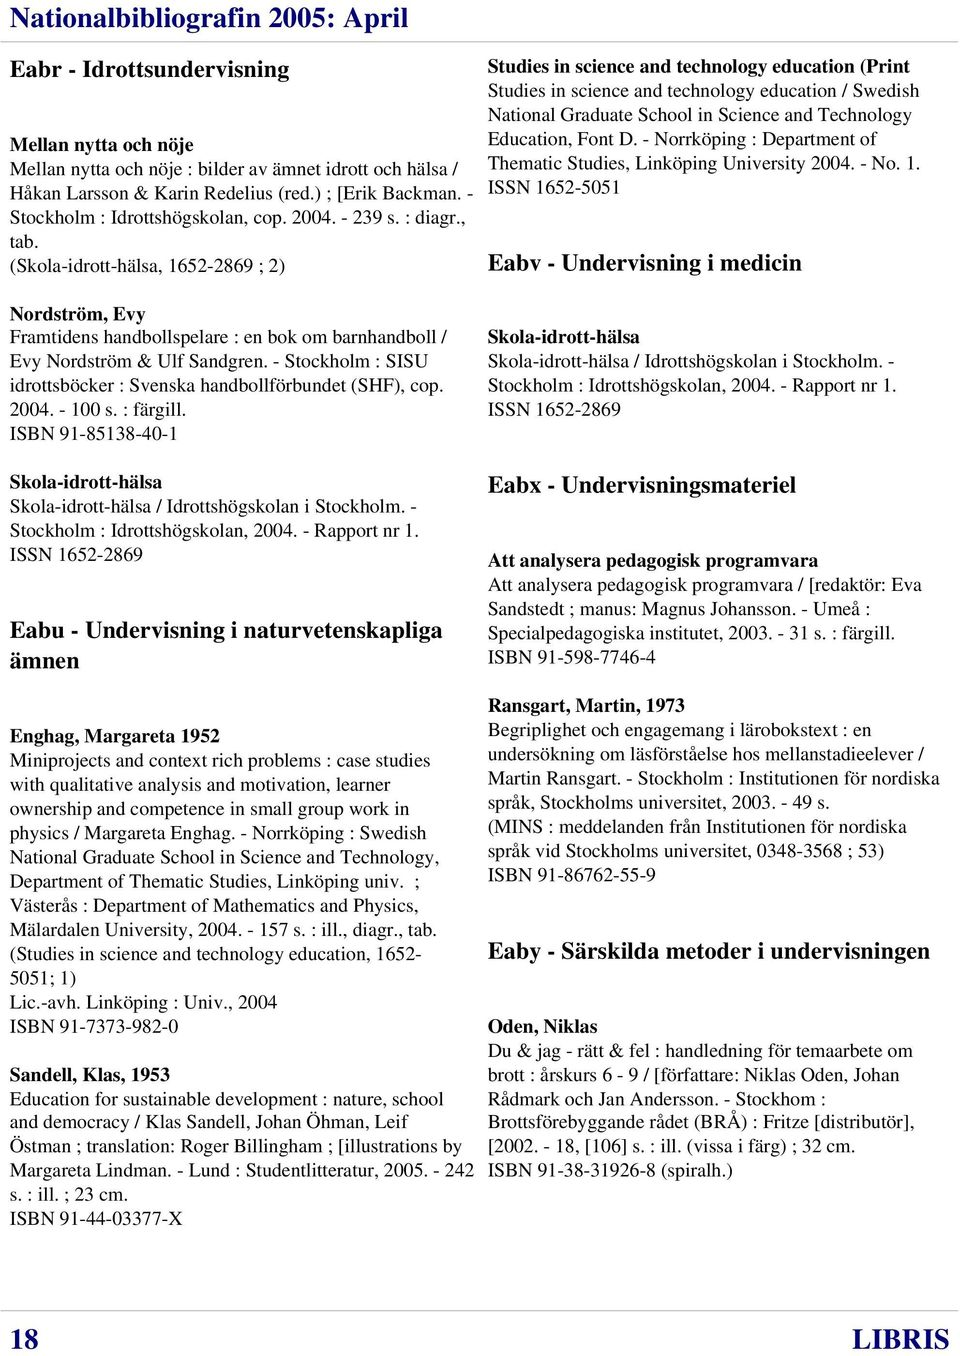 (Skola-idrott-hälsa, 1652-2869 ; 2) Studies in science and technology education (Print Studies in science and technology education / Swedish National Graduate School in Science and Technology